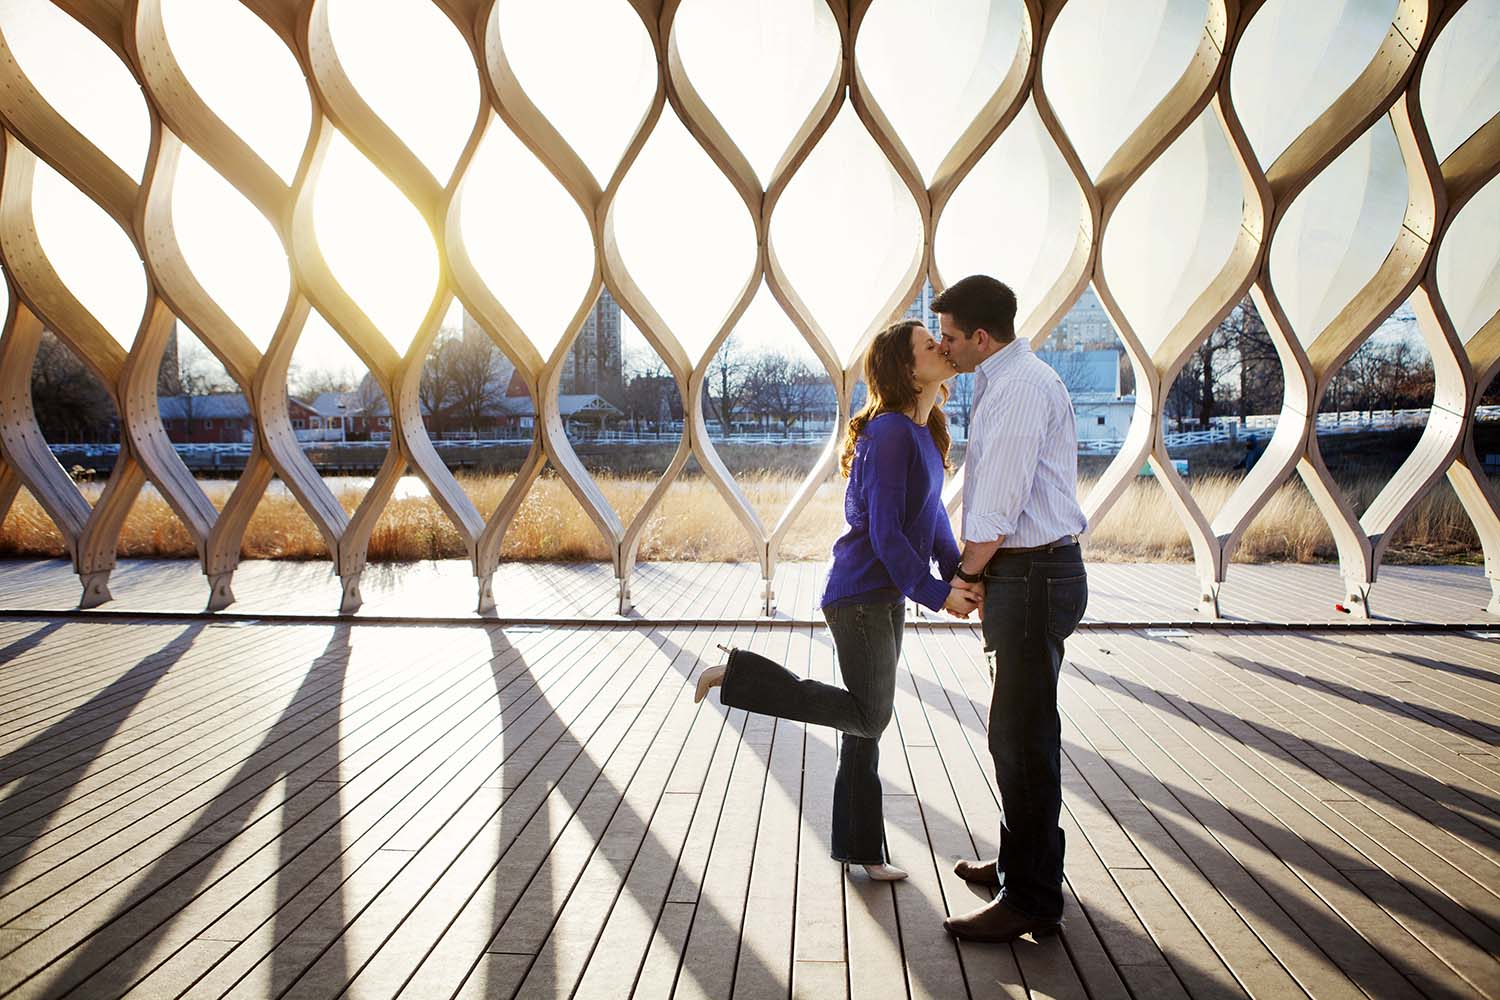 South Lincoln Park Zoo Wooden Honeycomb Sculpture Engagement Pho